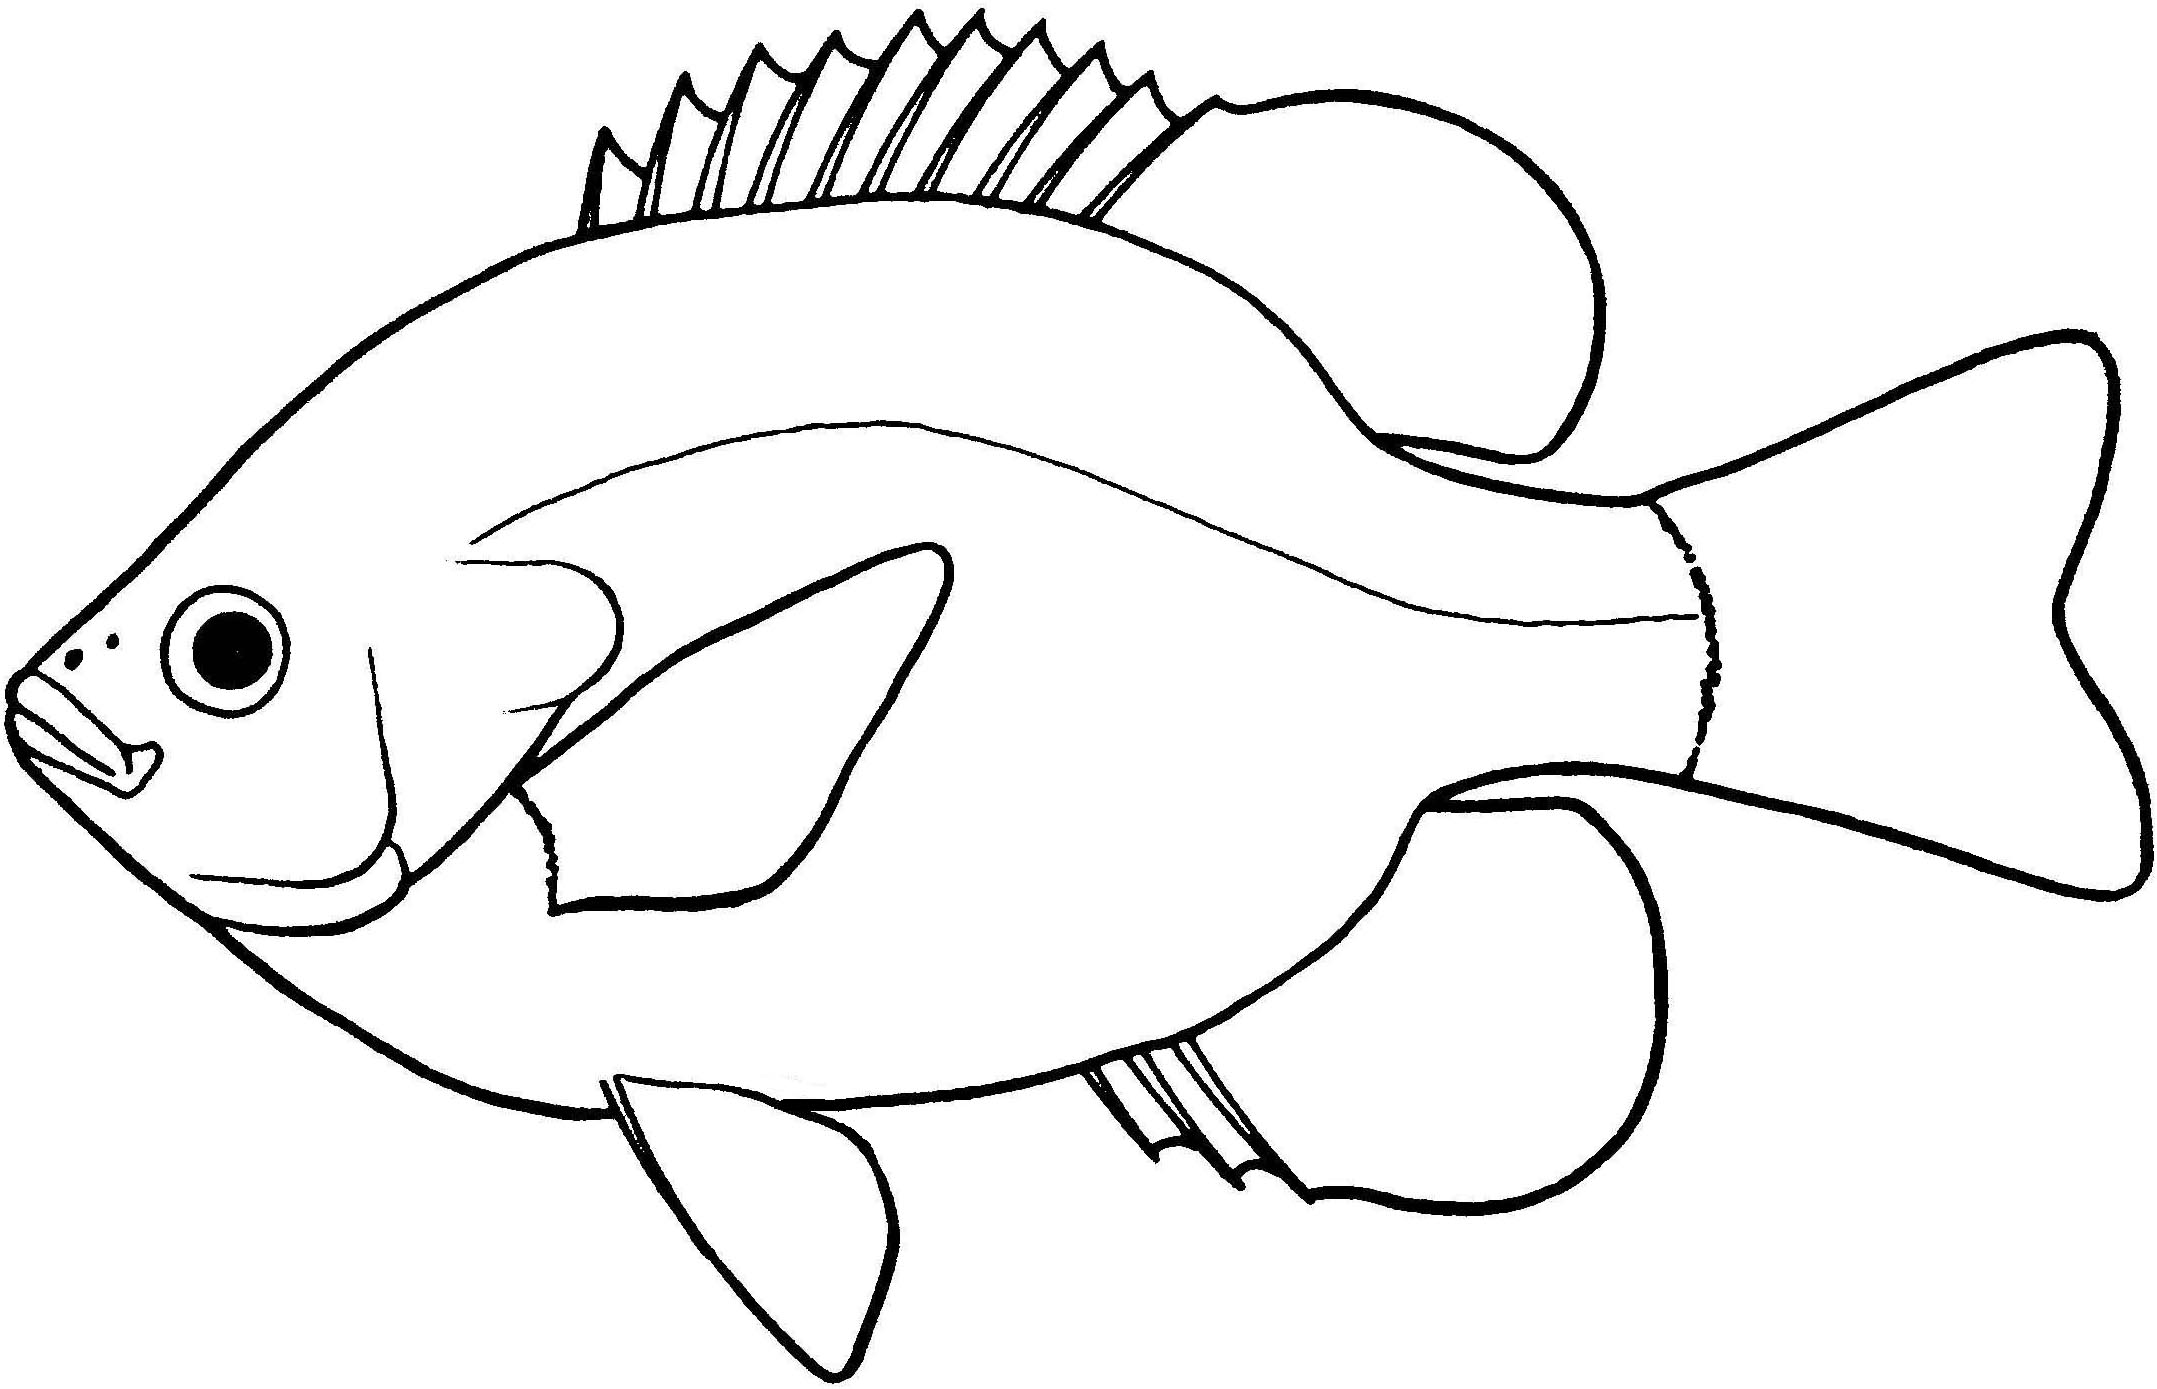 Simple Line Drawing Clip Art : Fish line drawings cliparts